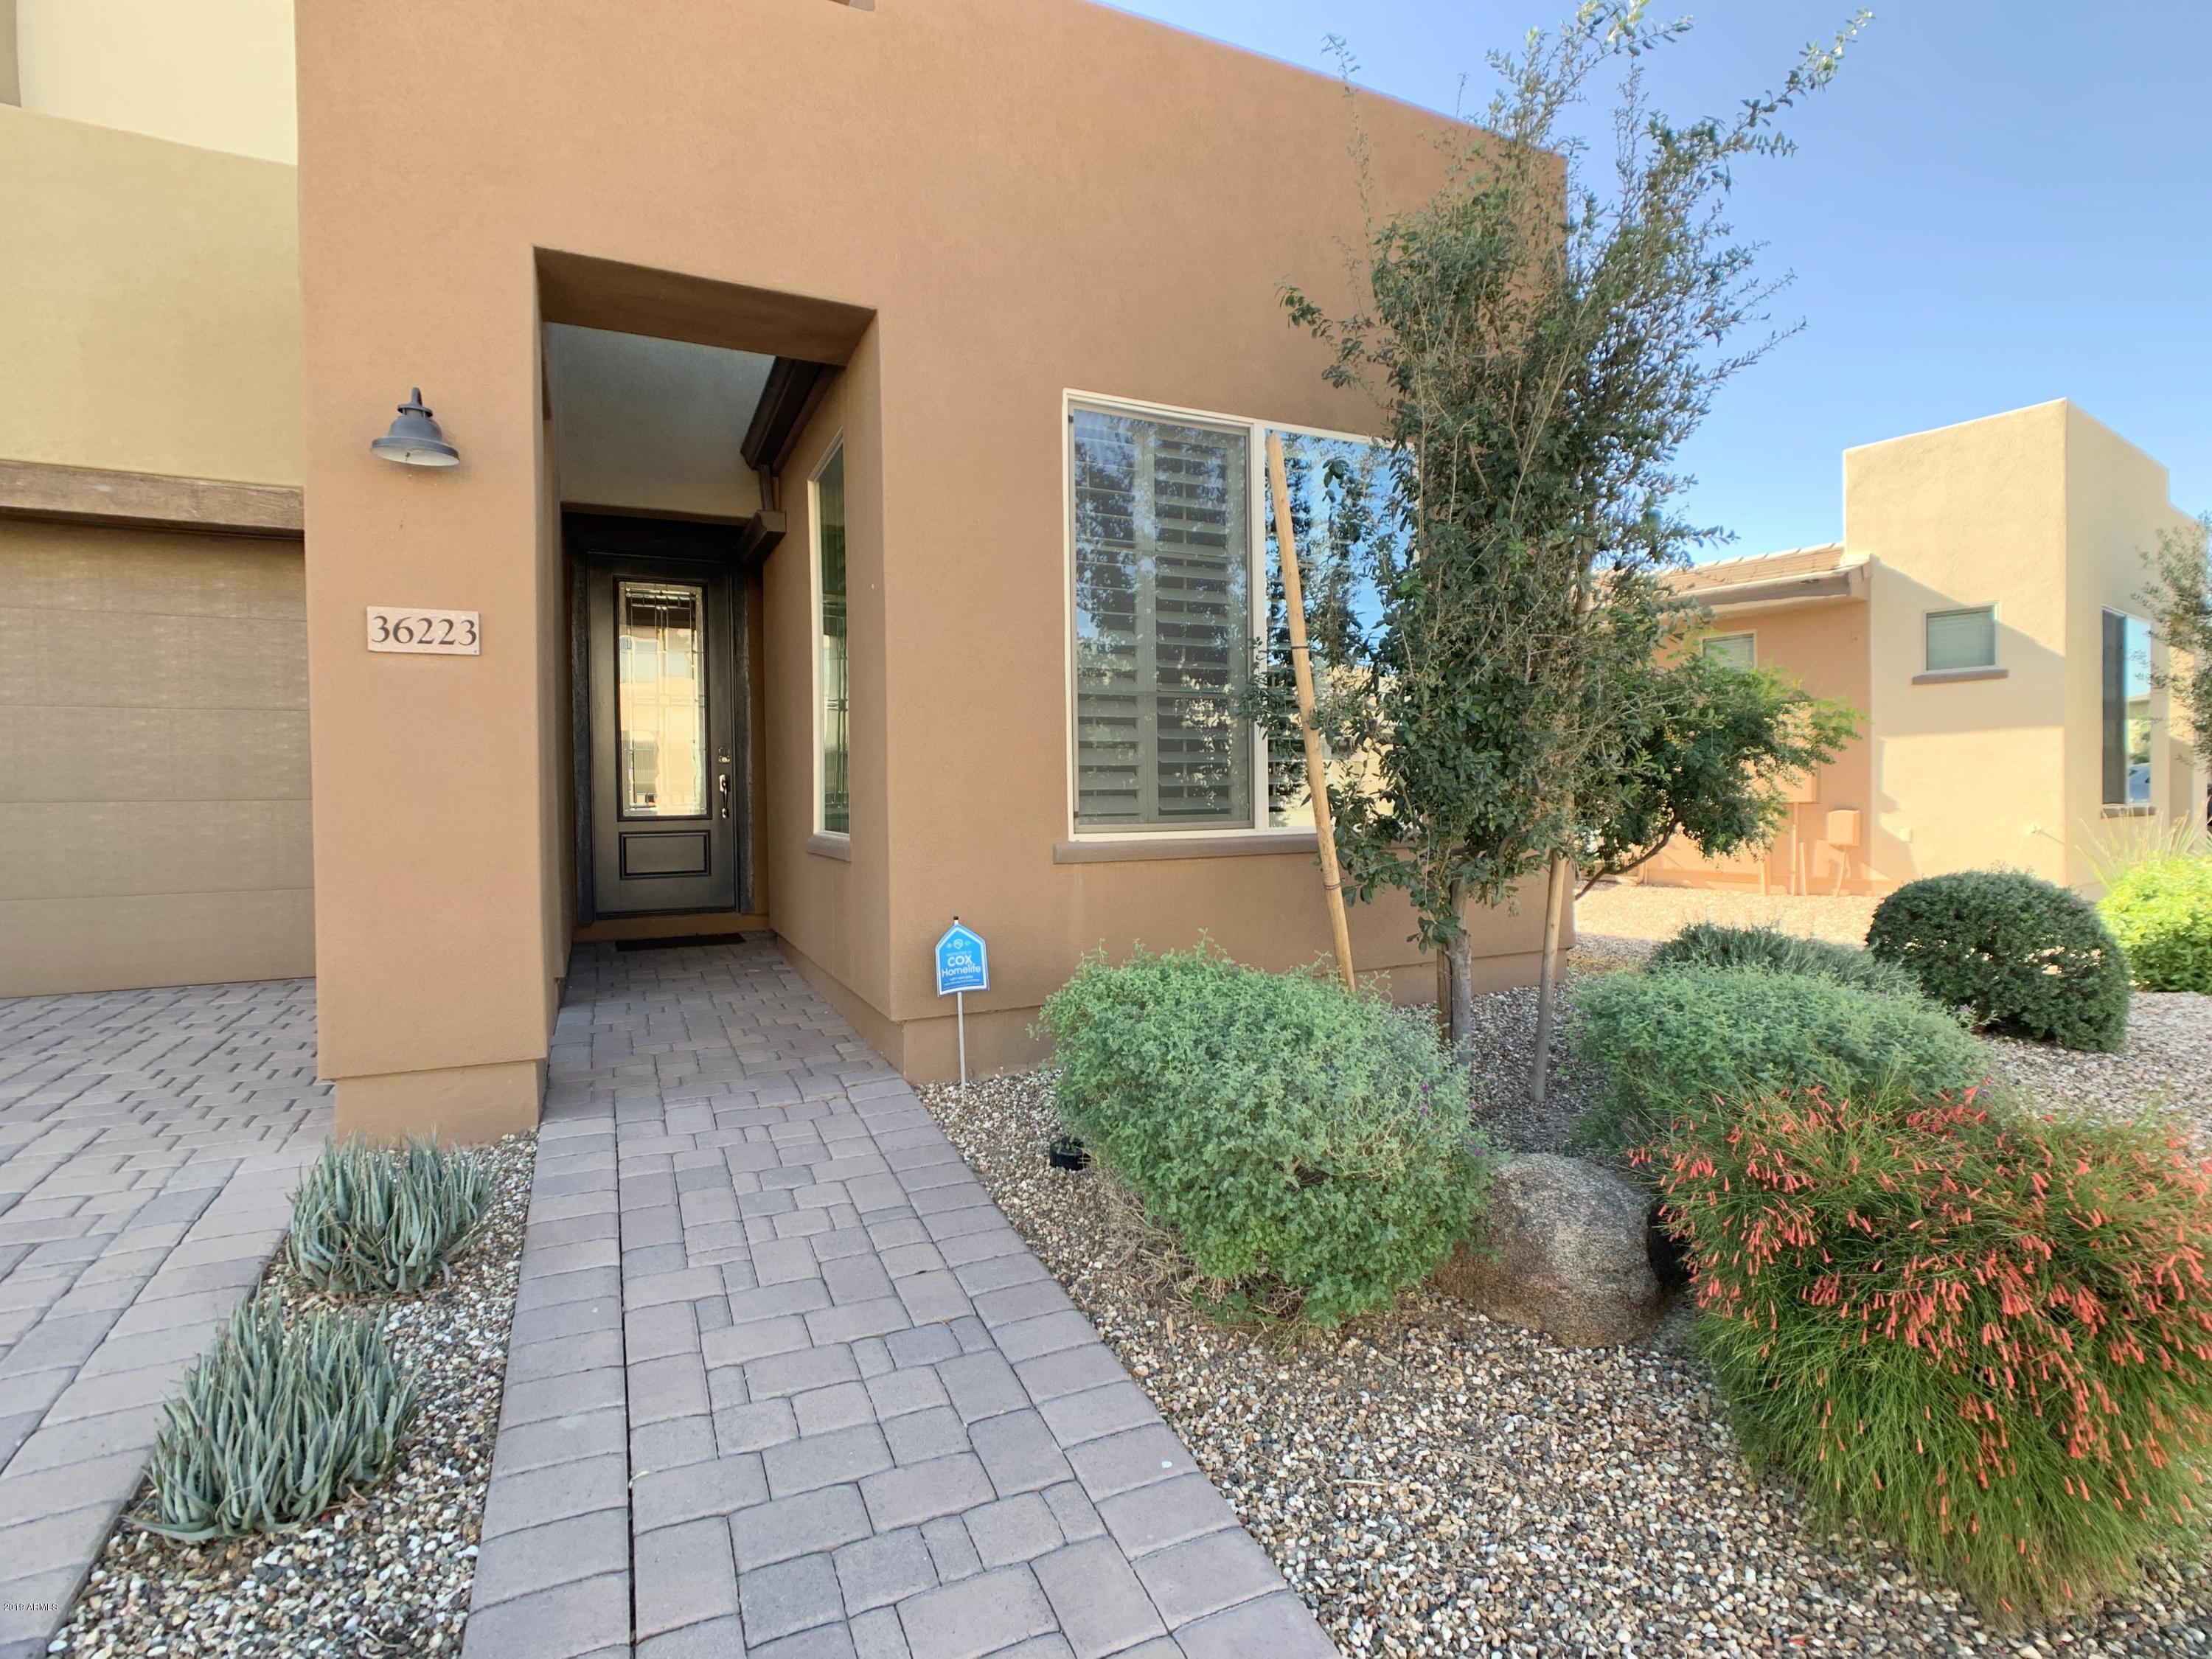 Photo of 36223 N DESERT TEA Drive, San Tan Valley, AZ 85140